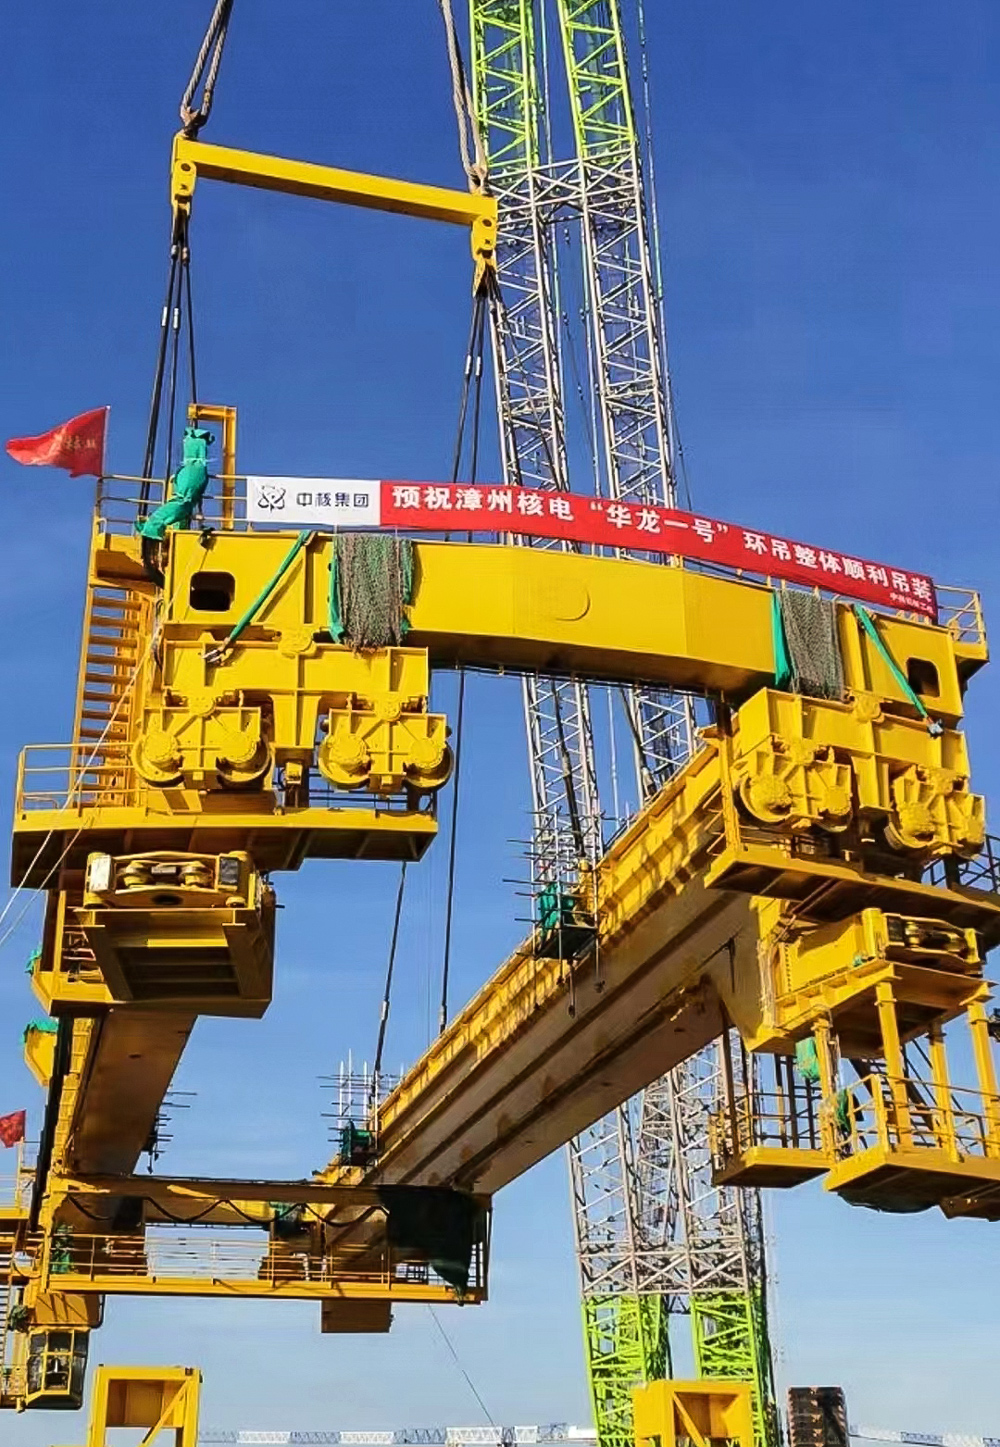 crane-installation-at-nuclear-power-plant